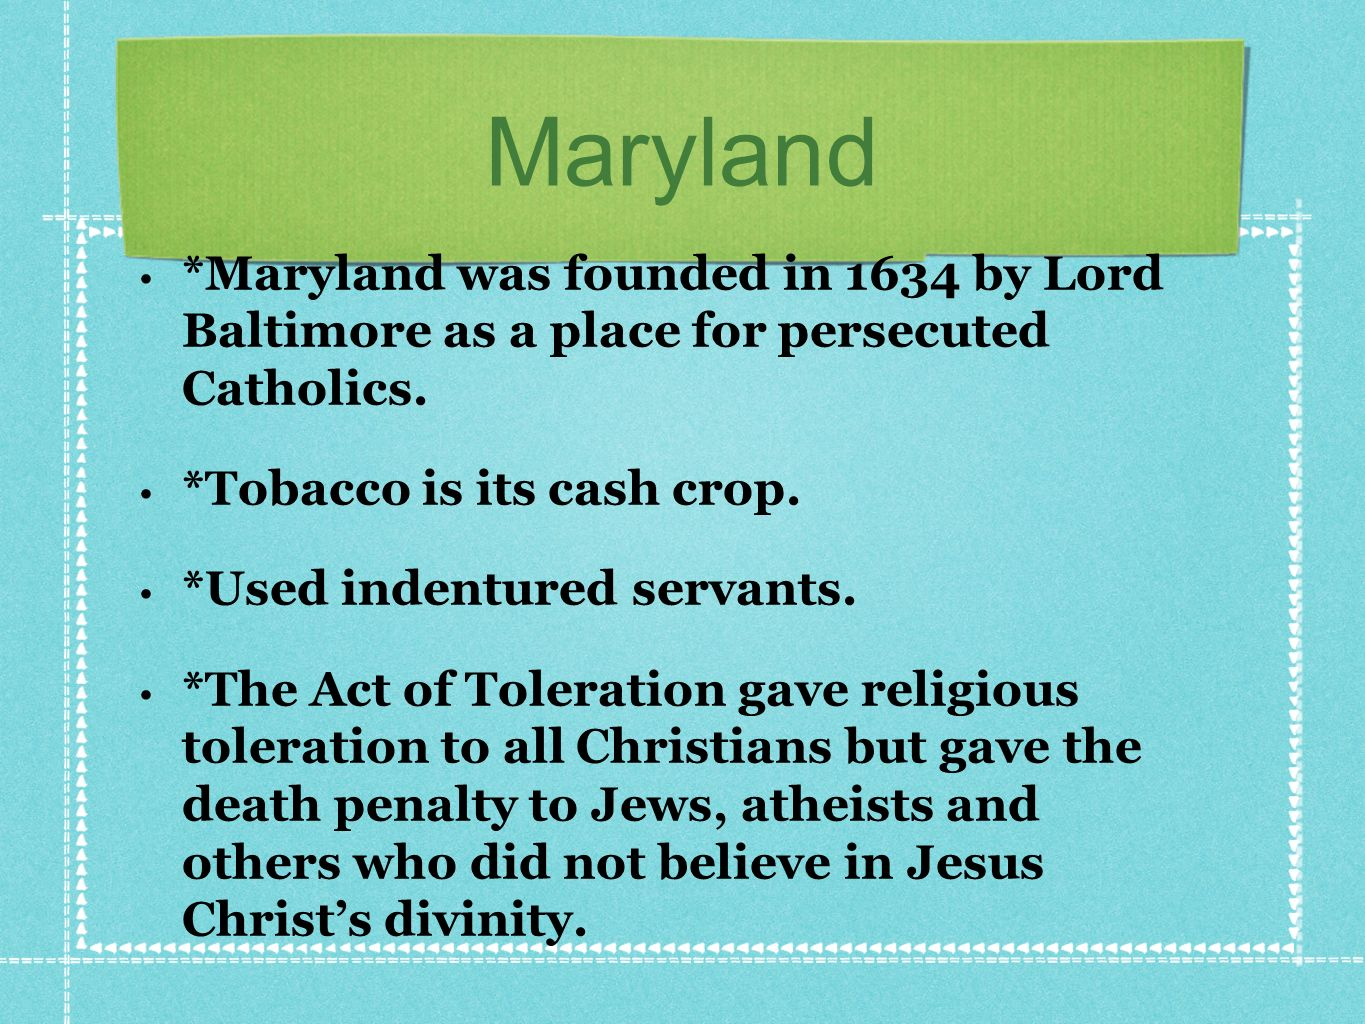 Maryland *Maryland was founded in 1634 by Lord Baltimore as a place for persecuted Catholics.